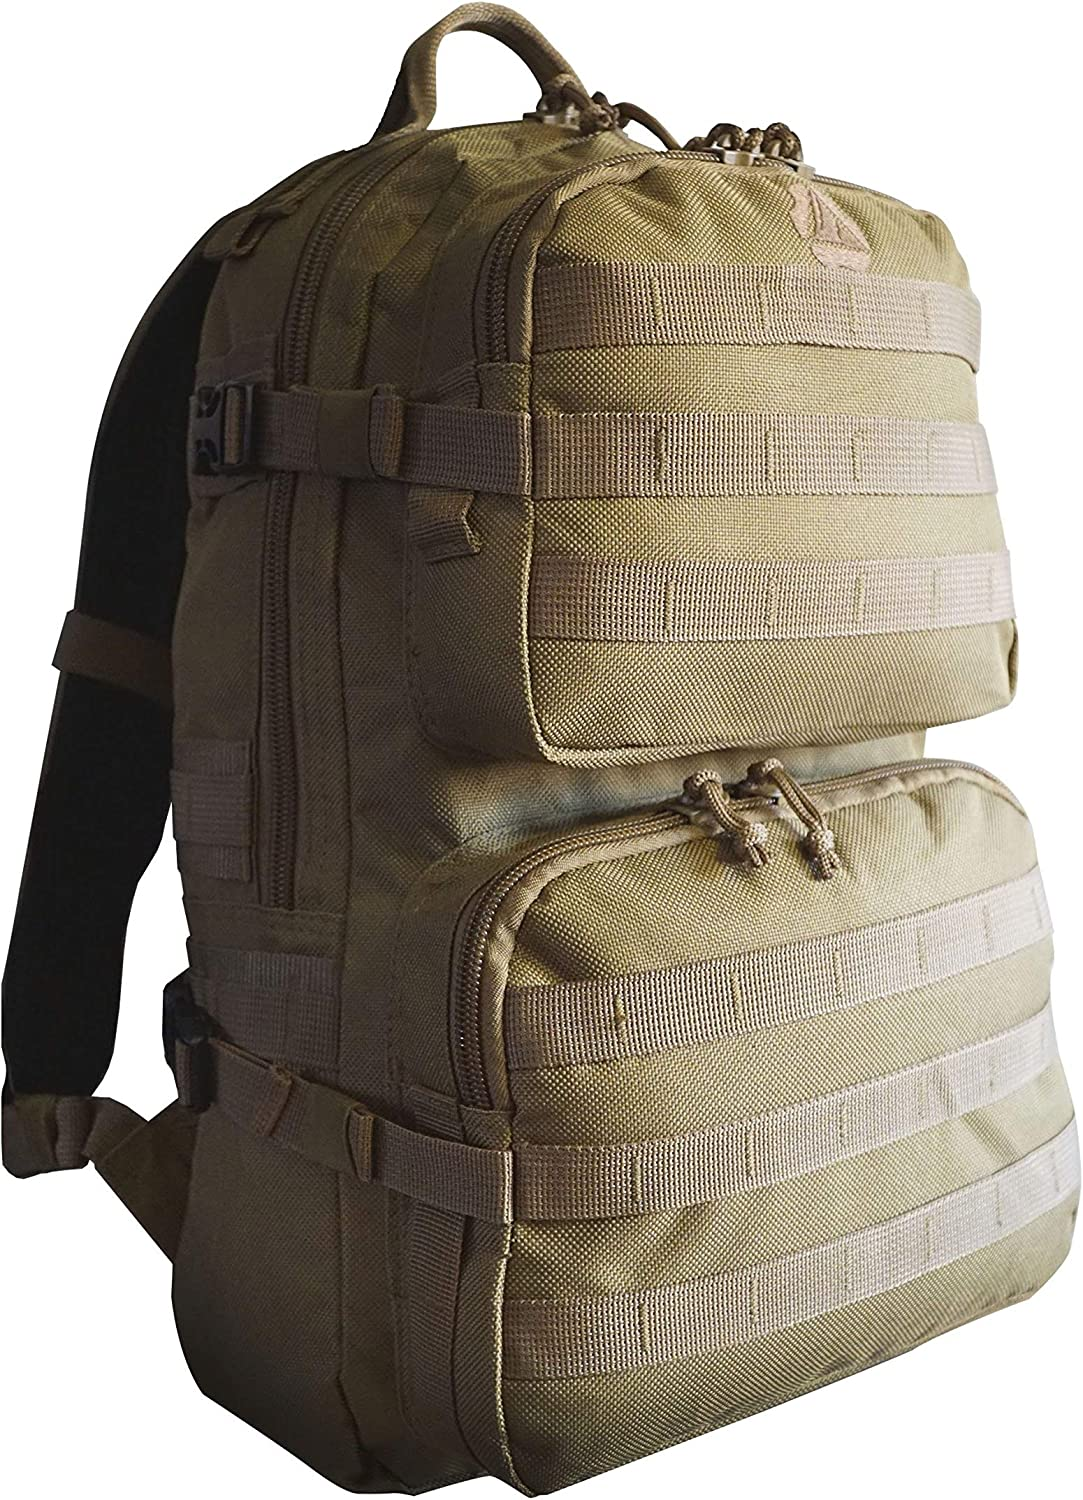 Krevis CCW Tactical Day Tan Coyote Max 71% OFF Max 65% OFF Pack